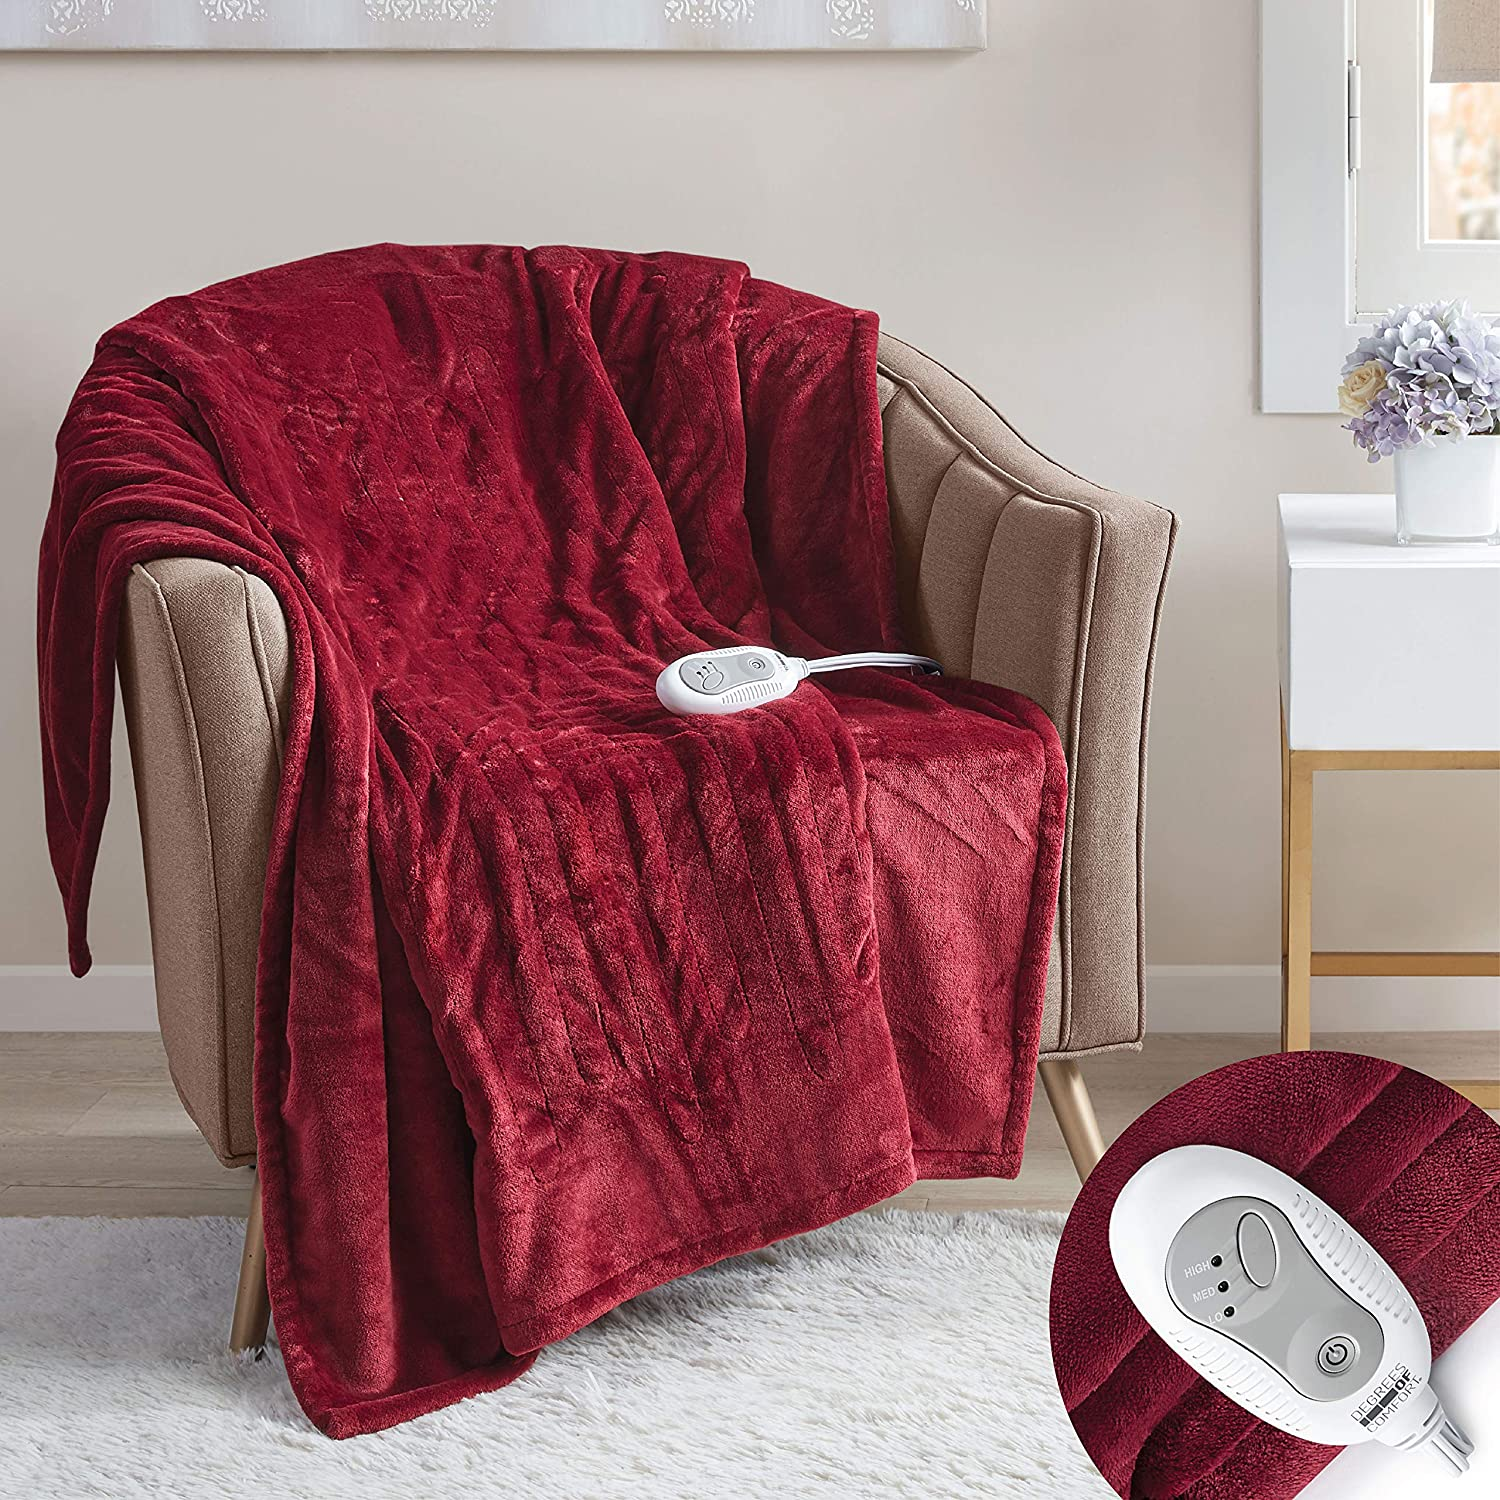 gifts-for-elderly-women-heated-throw-blanket